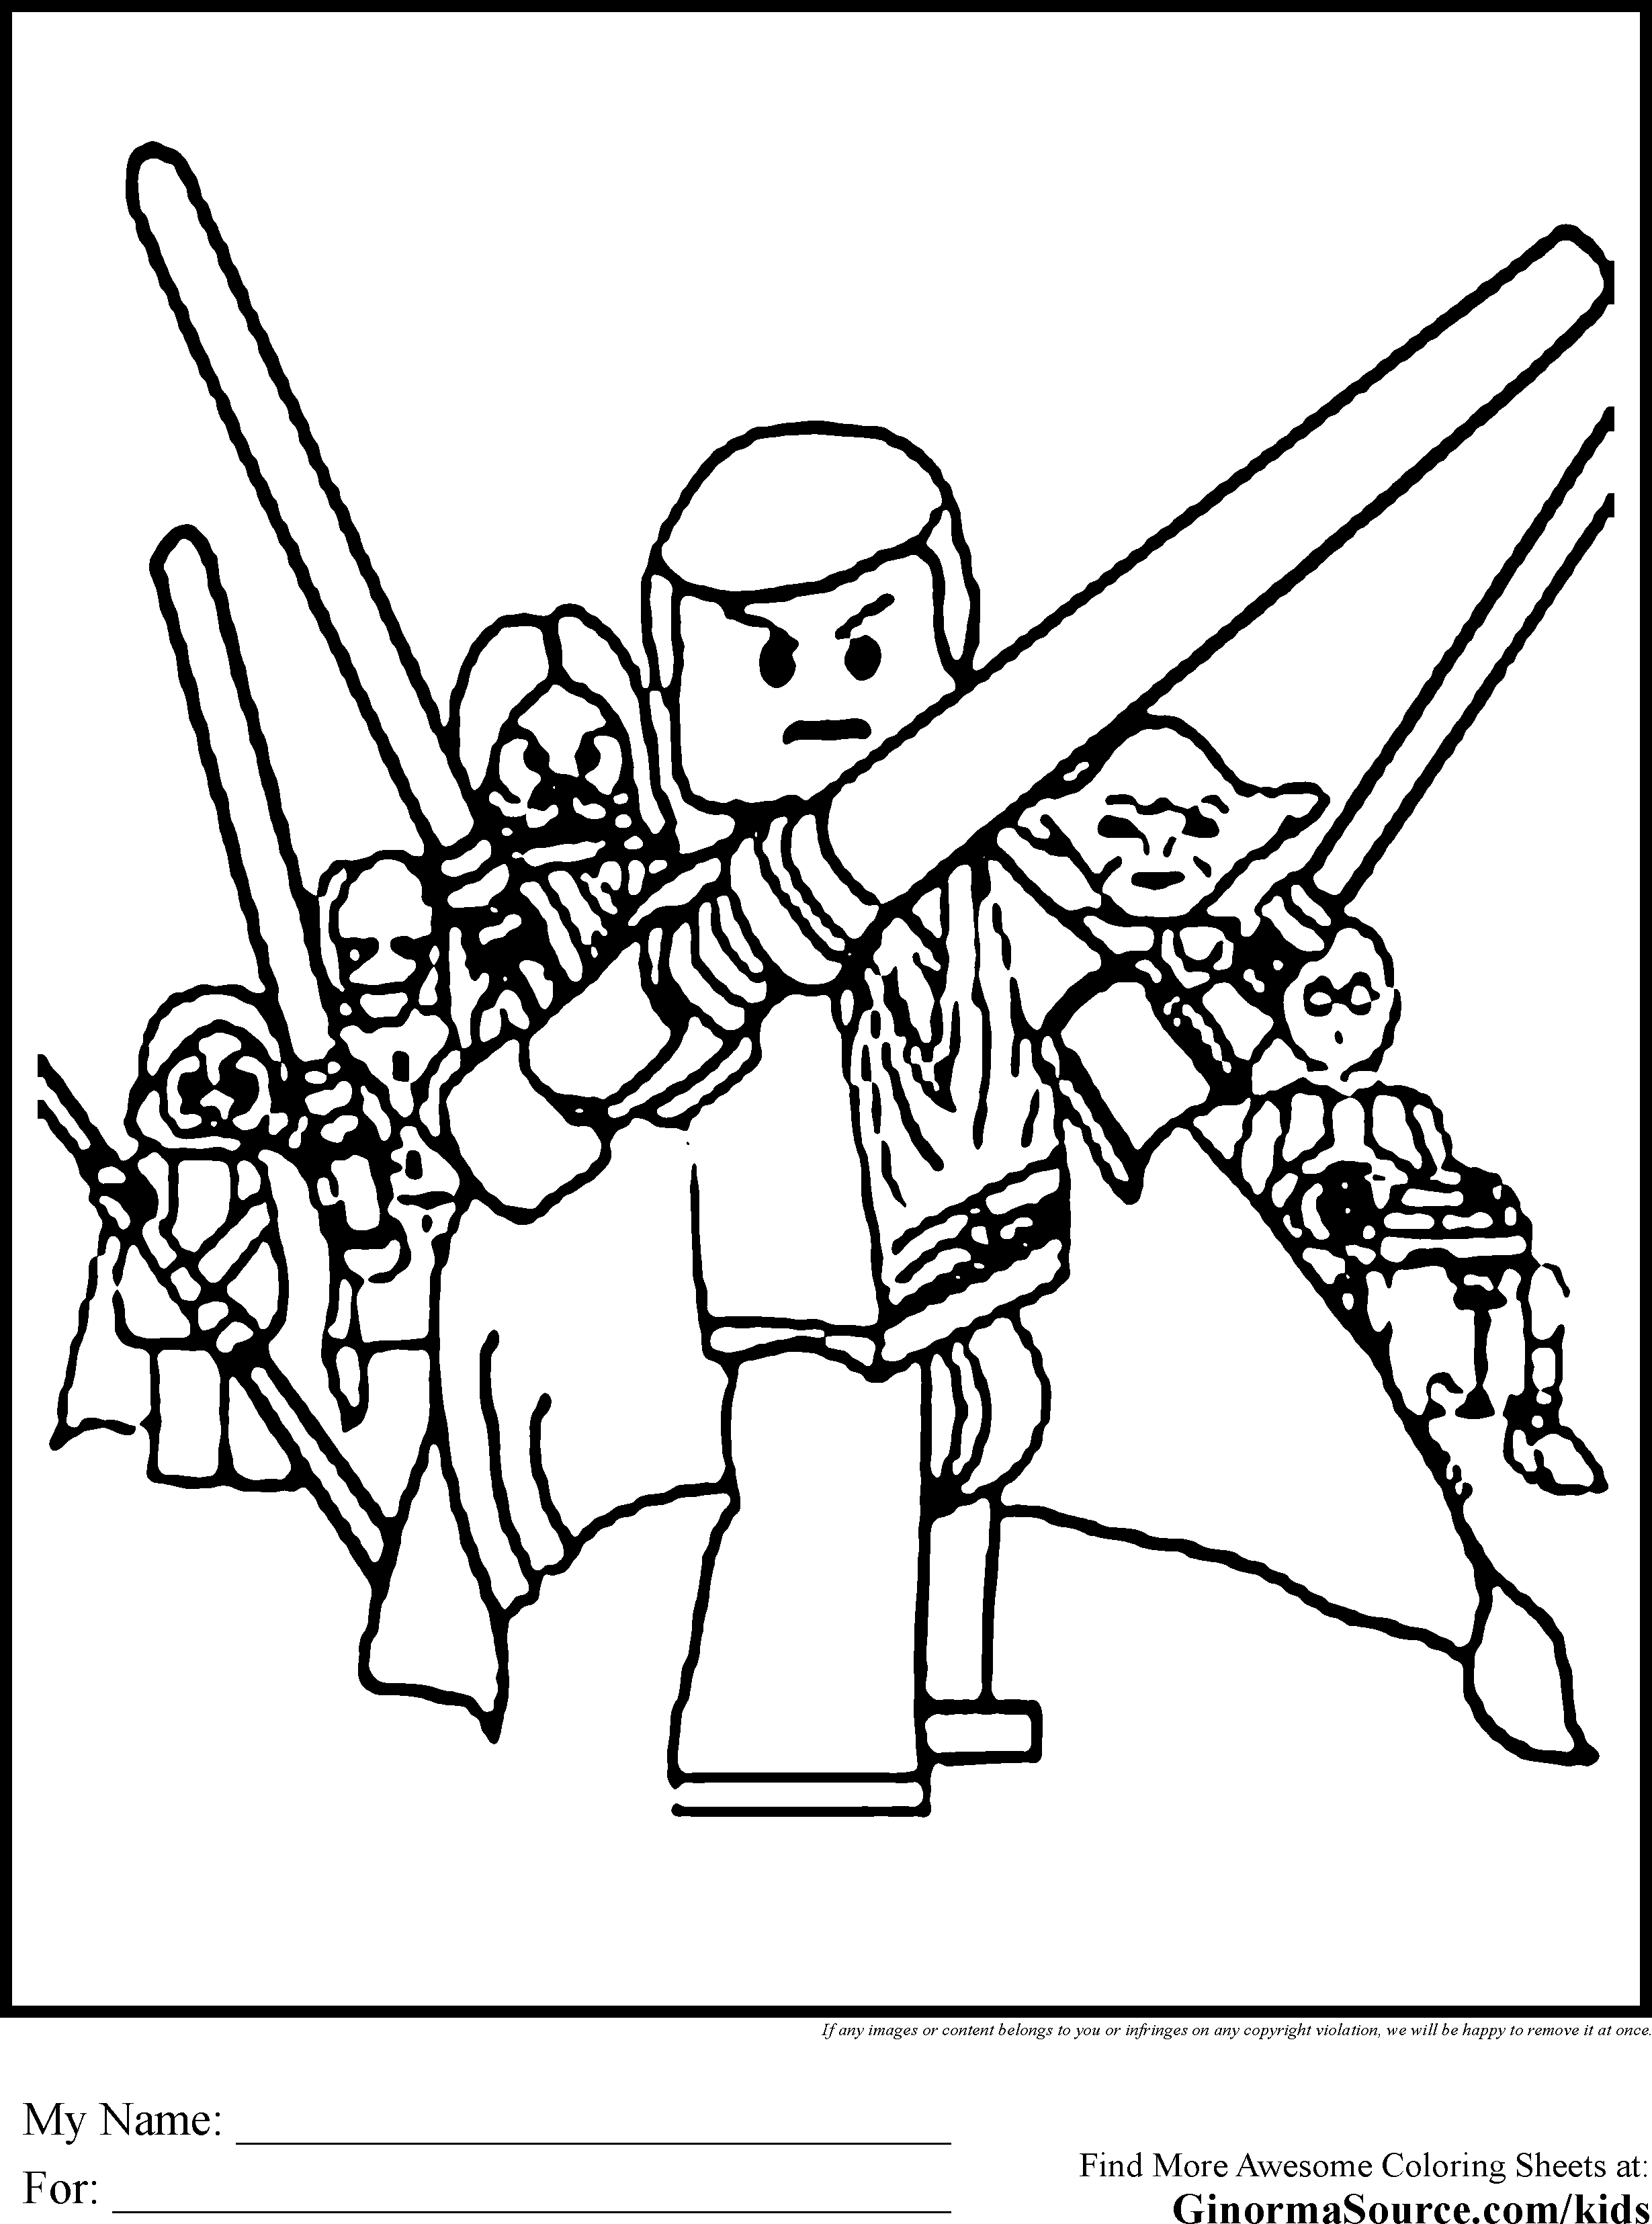 Star Wars Coloring Pages Lego coloring pages, Lego